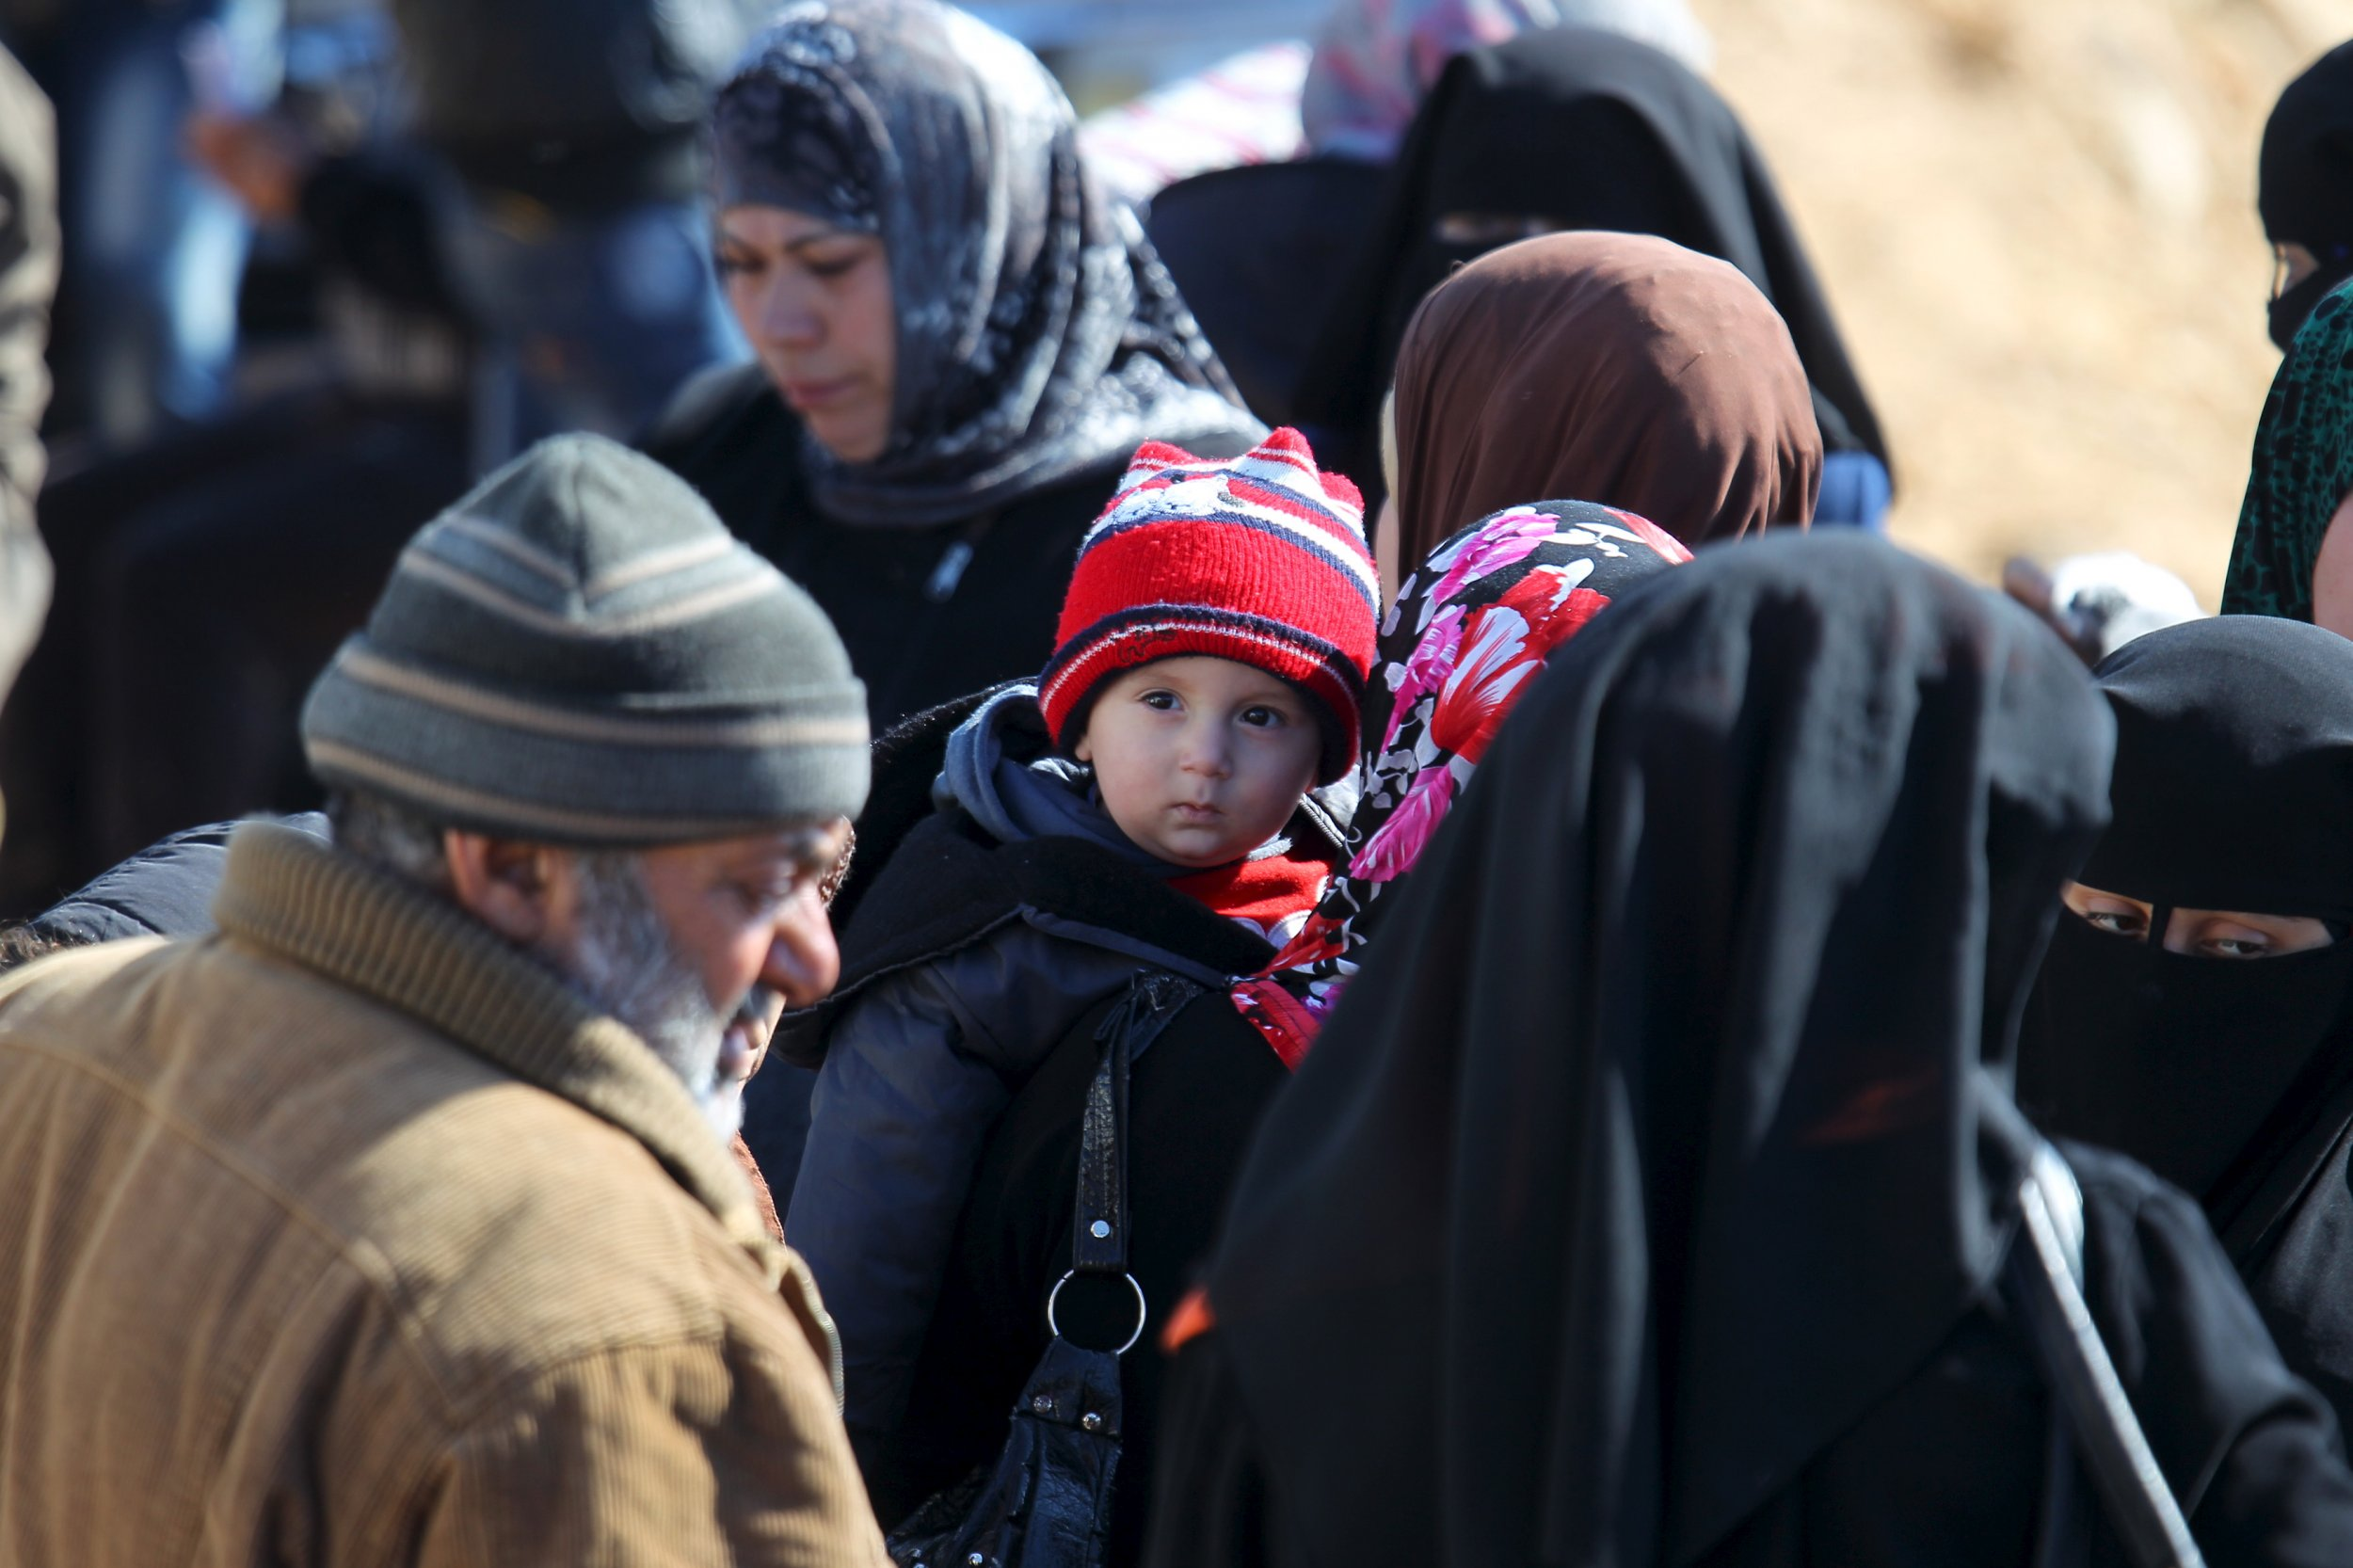 UN aims to restart Syria peace talks.